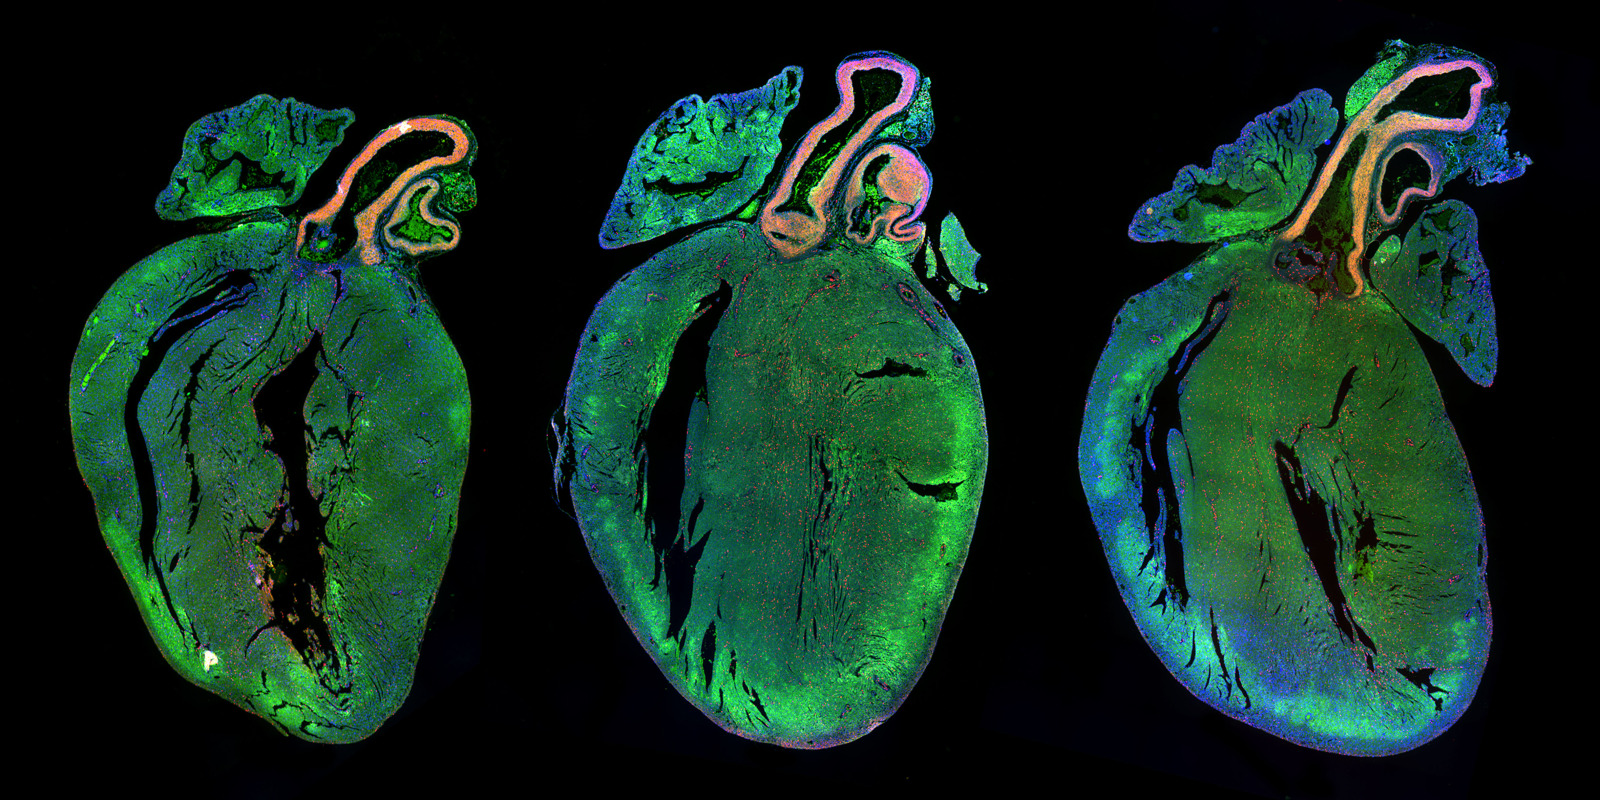 Neonatal rat hearts treated with a control microRNA (left) or two human microRNAs strongly increasing cardiomyocyte proliferation (middle and right).